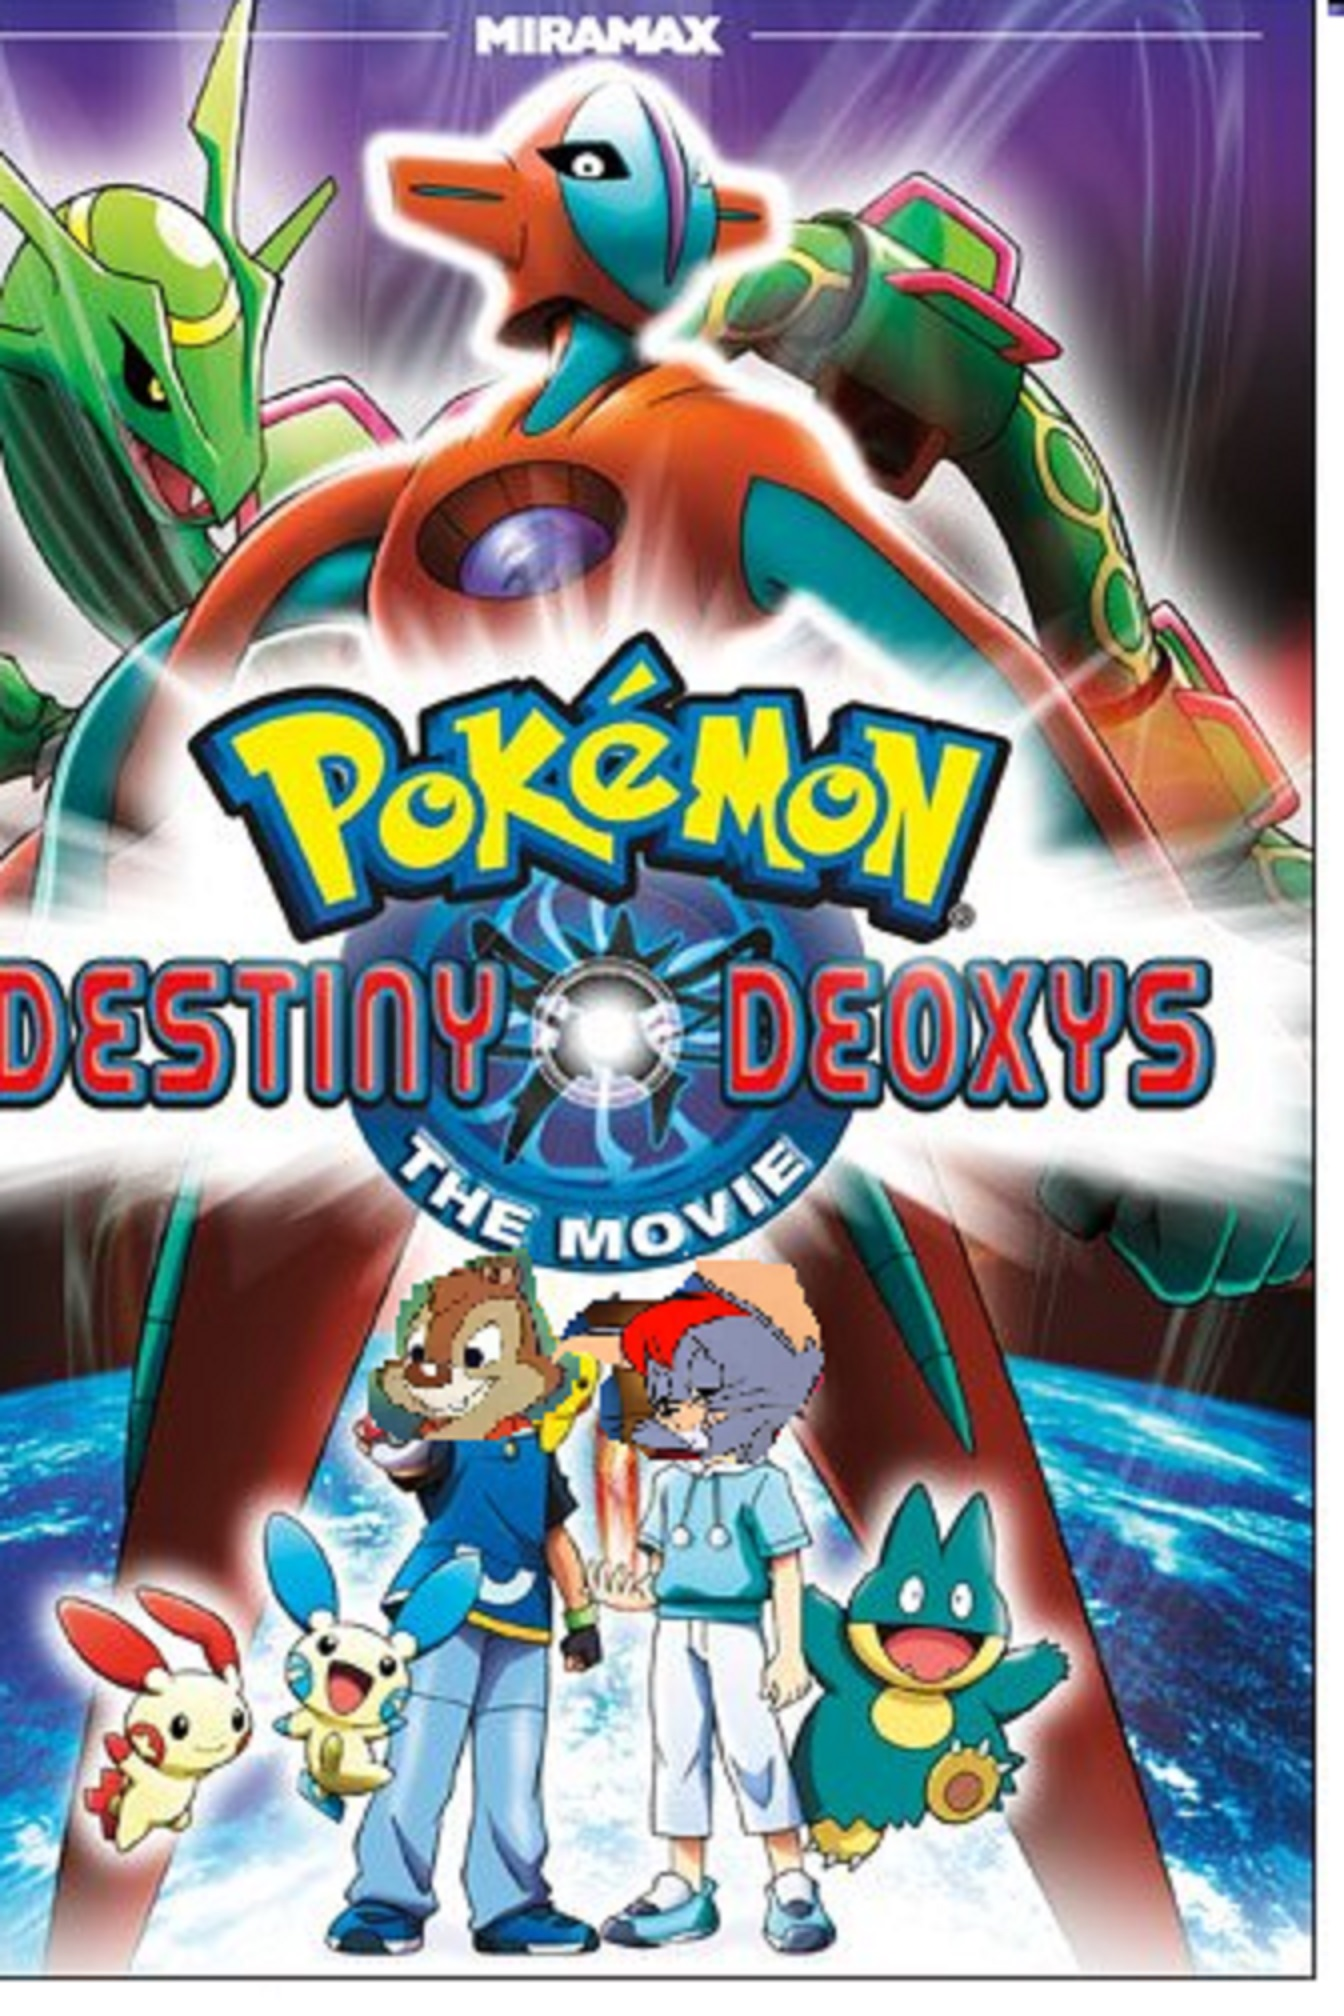 Pokemon Destiny Deoxys (TheBluesRockz Animal Style)